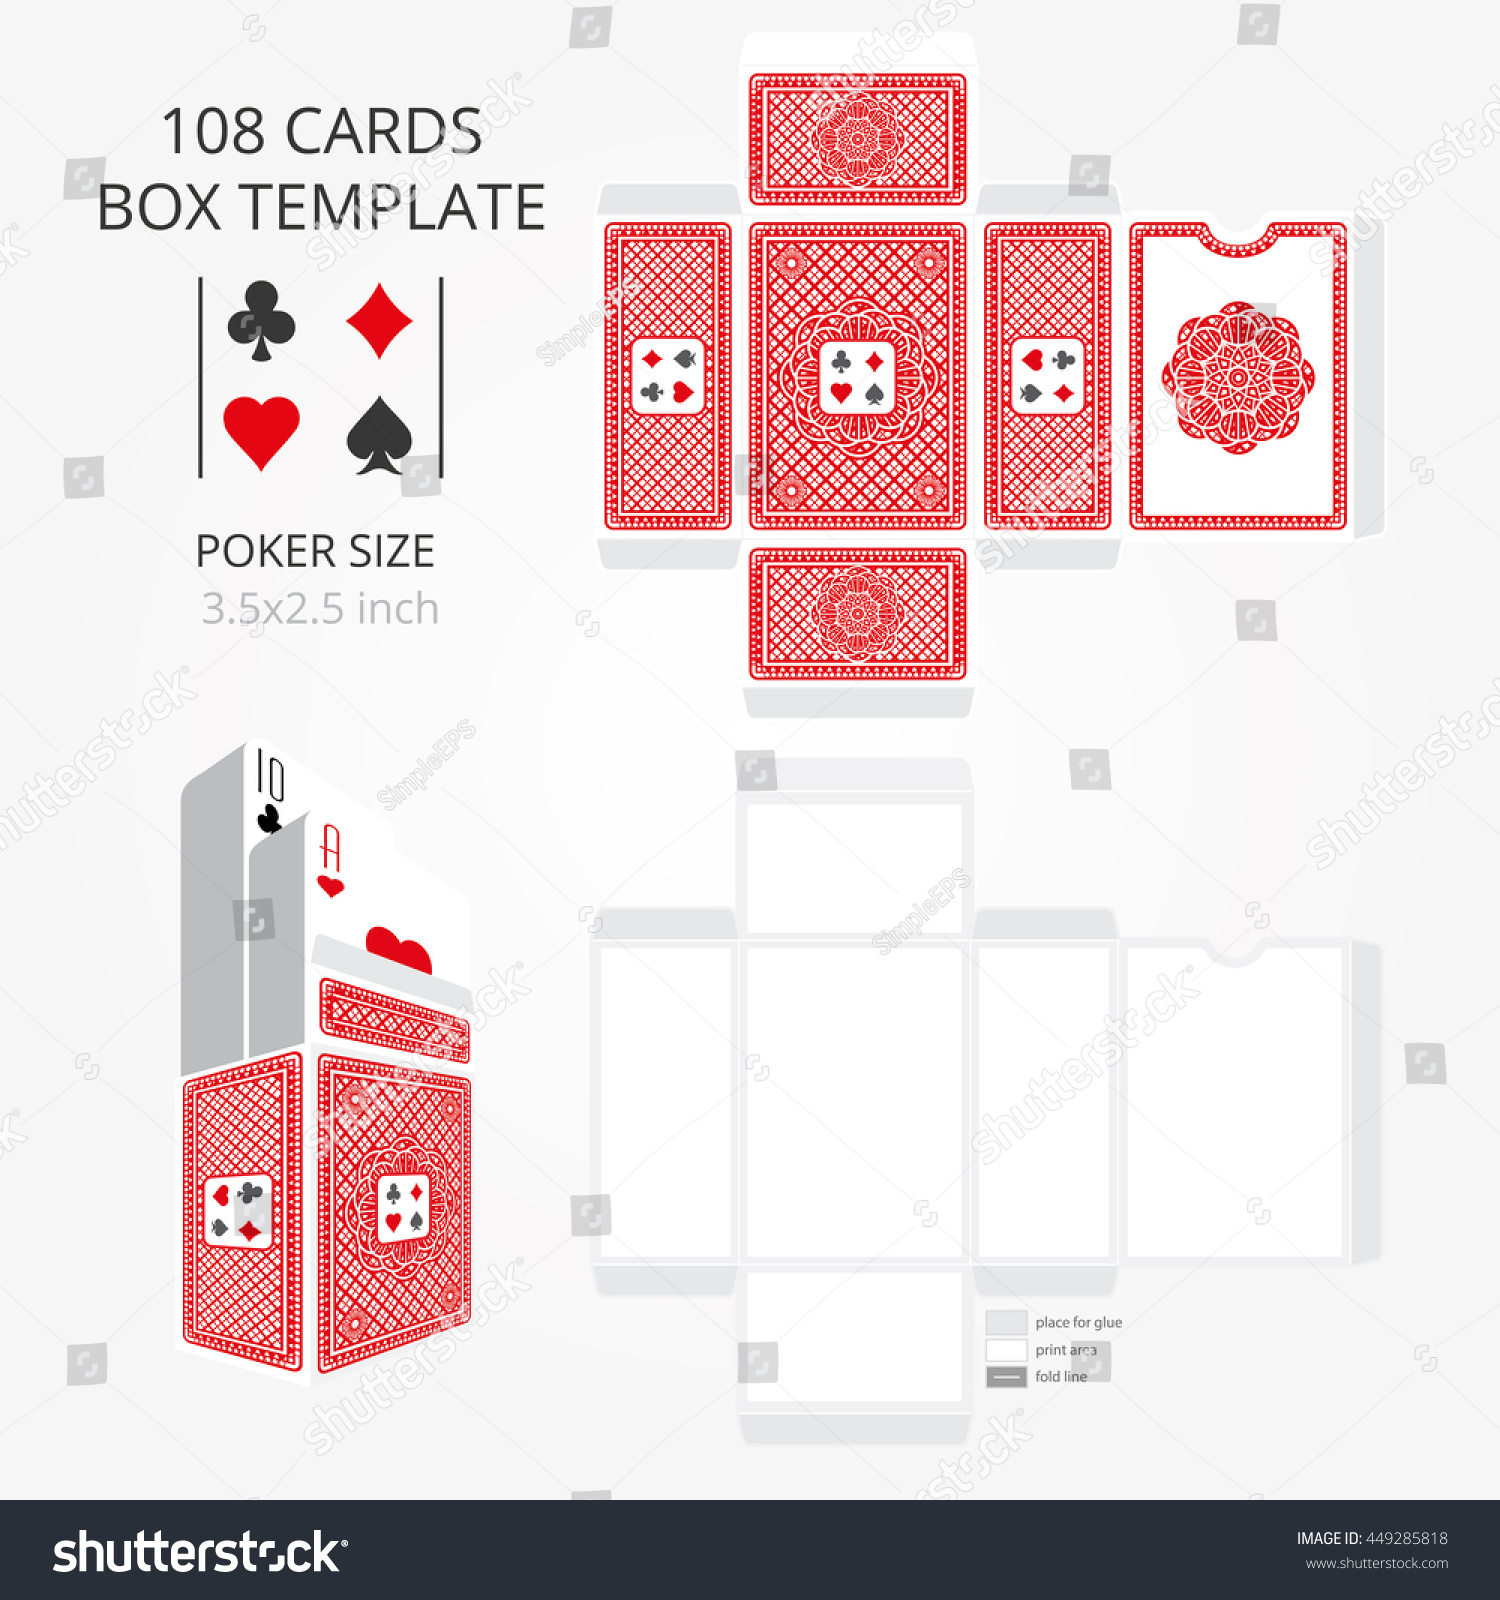 Poker Card Size Tuck Box Template Vector Stock Vector Royalty Free